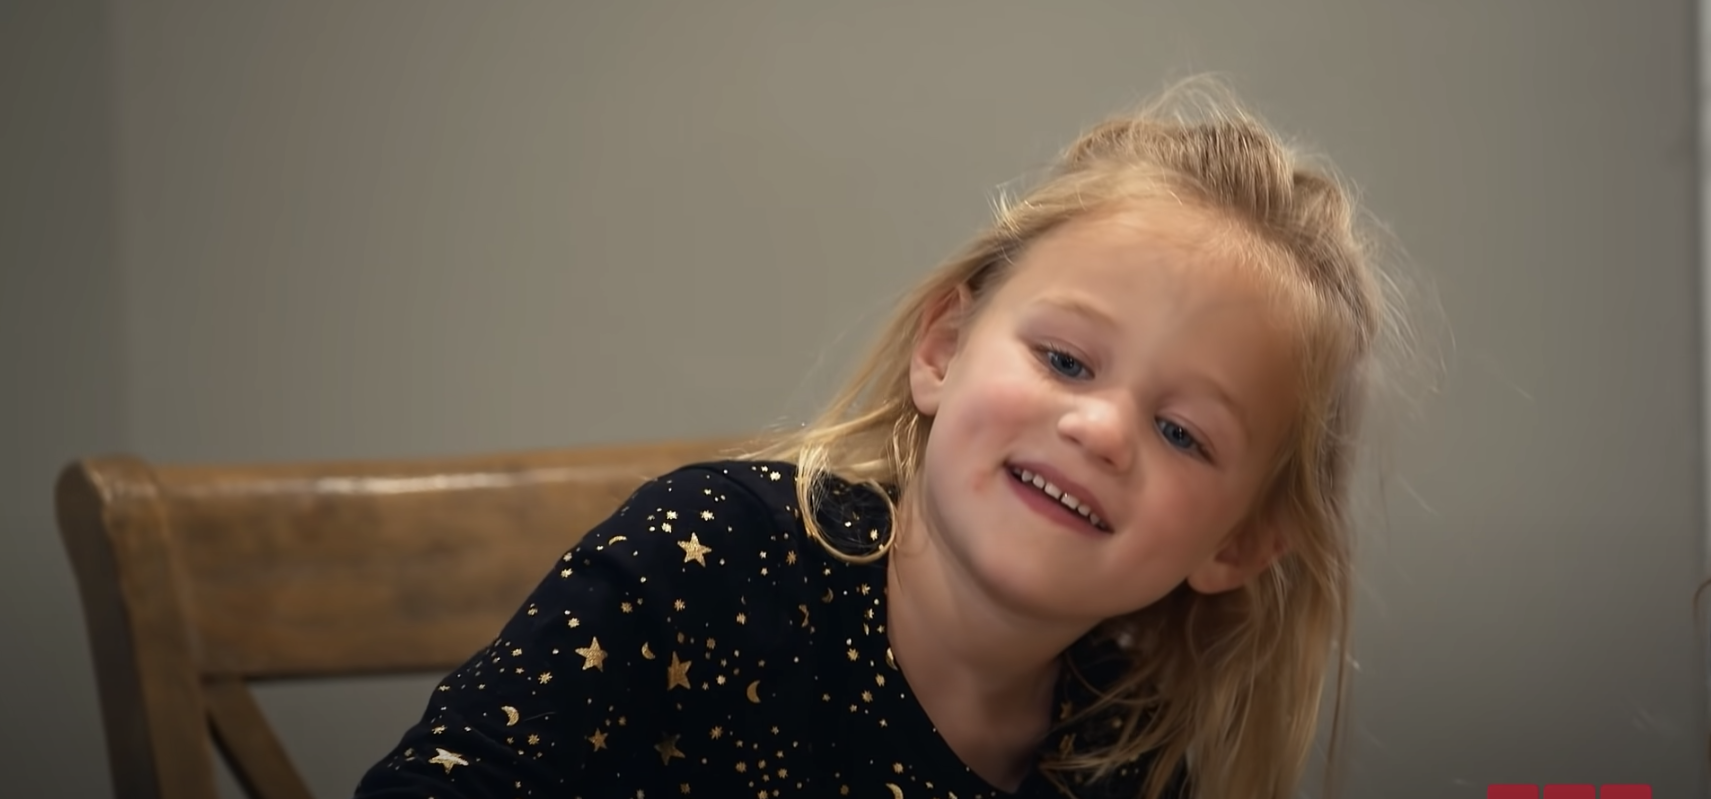 OutDaughtered allowance